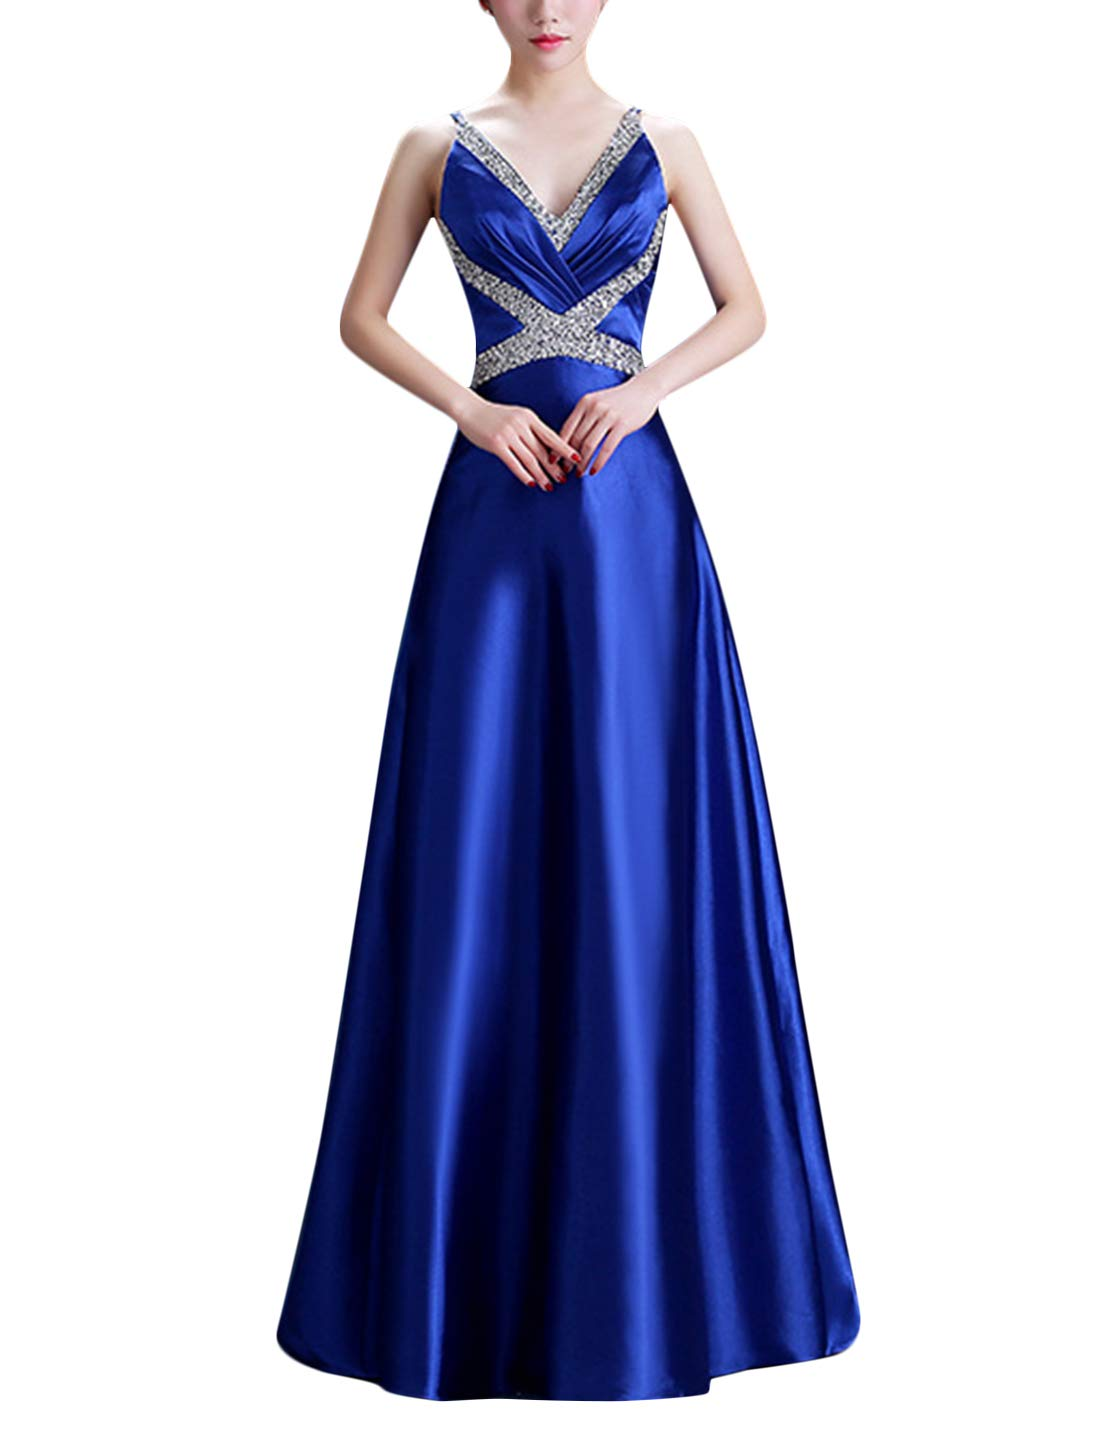 Available at Amazon: Tanming Women's Sleeveless V Neck Spaghetti Strap Evening Gown Party Maxi Dress